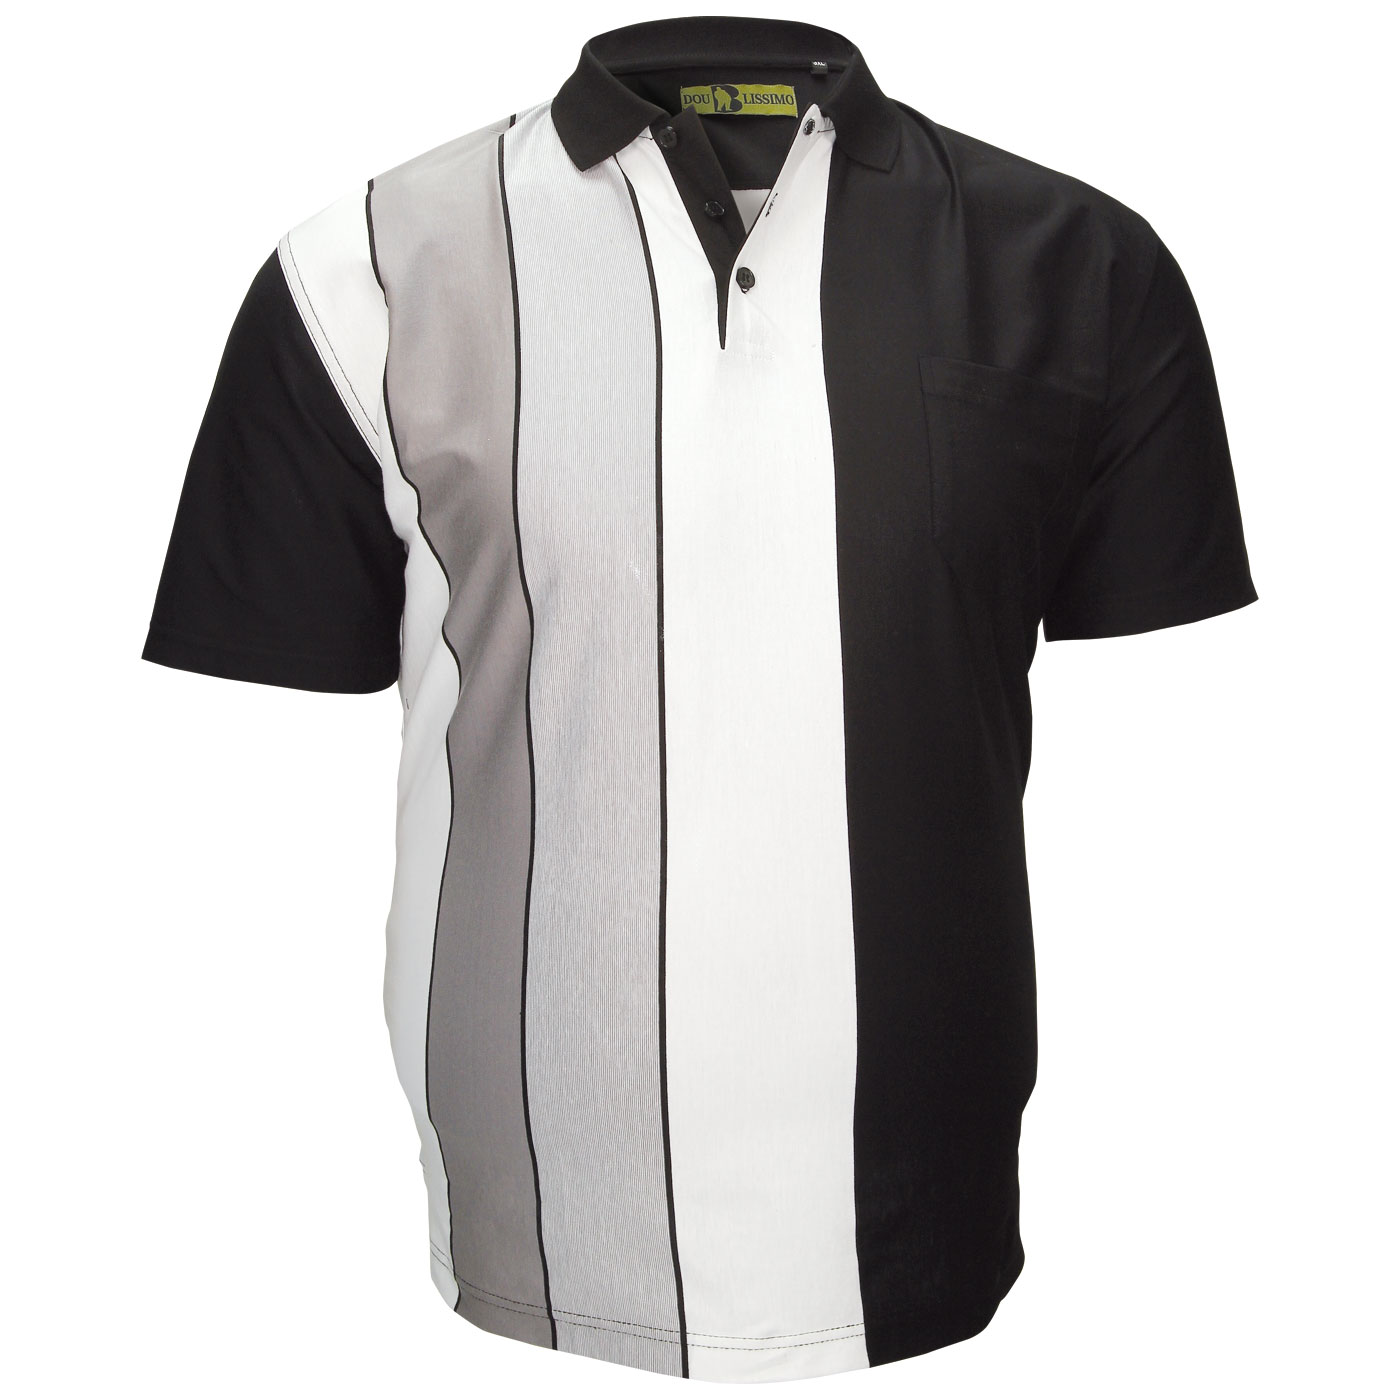 Big size polo shirt by the french store on internet